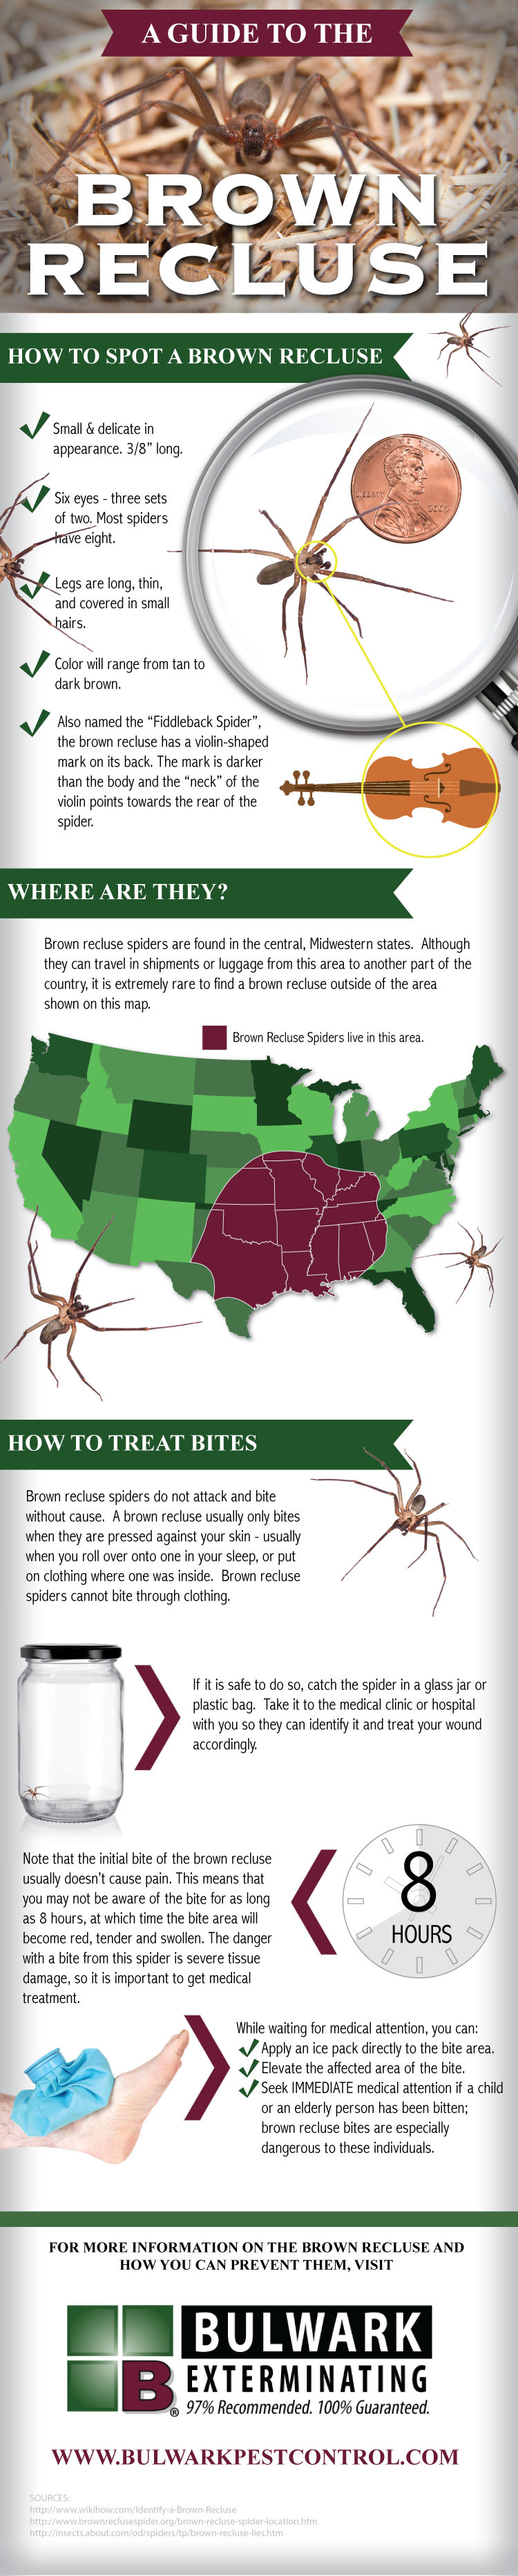 a-guide-to-the-brown-recluse-guide_5257cdd8469c2